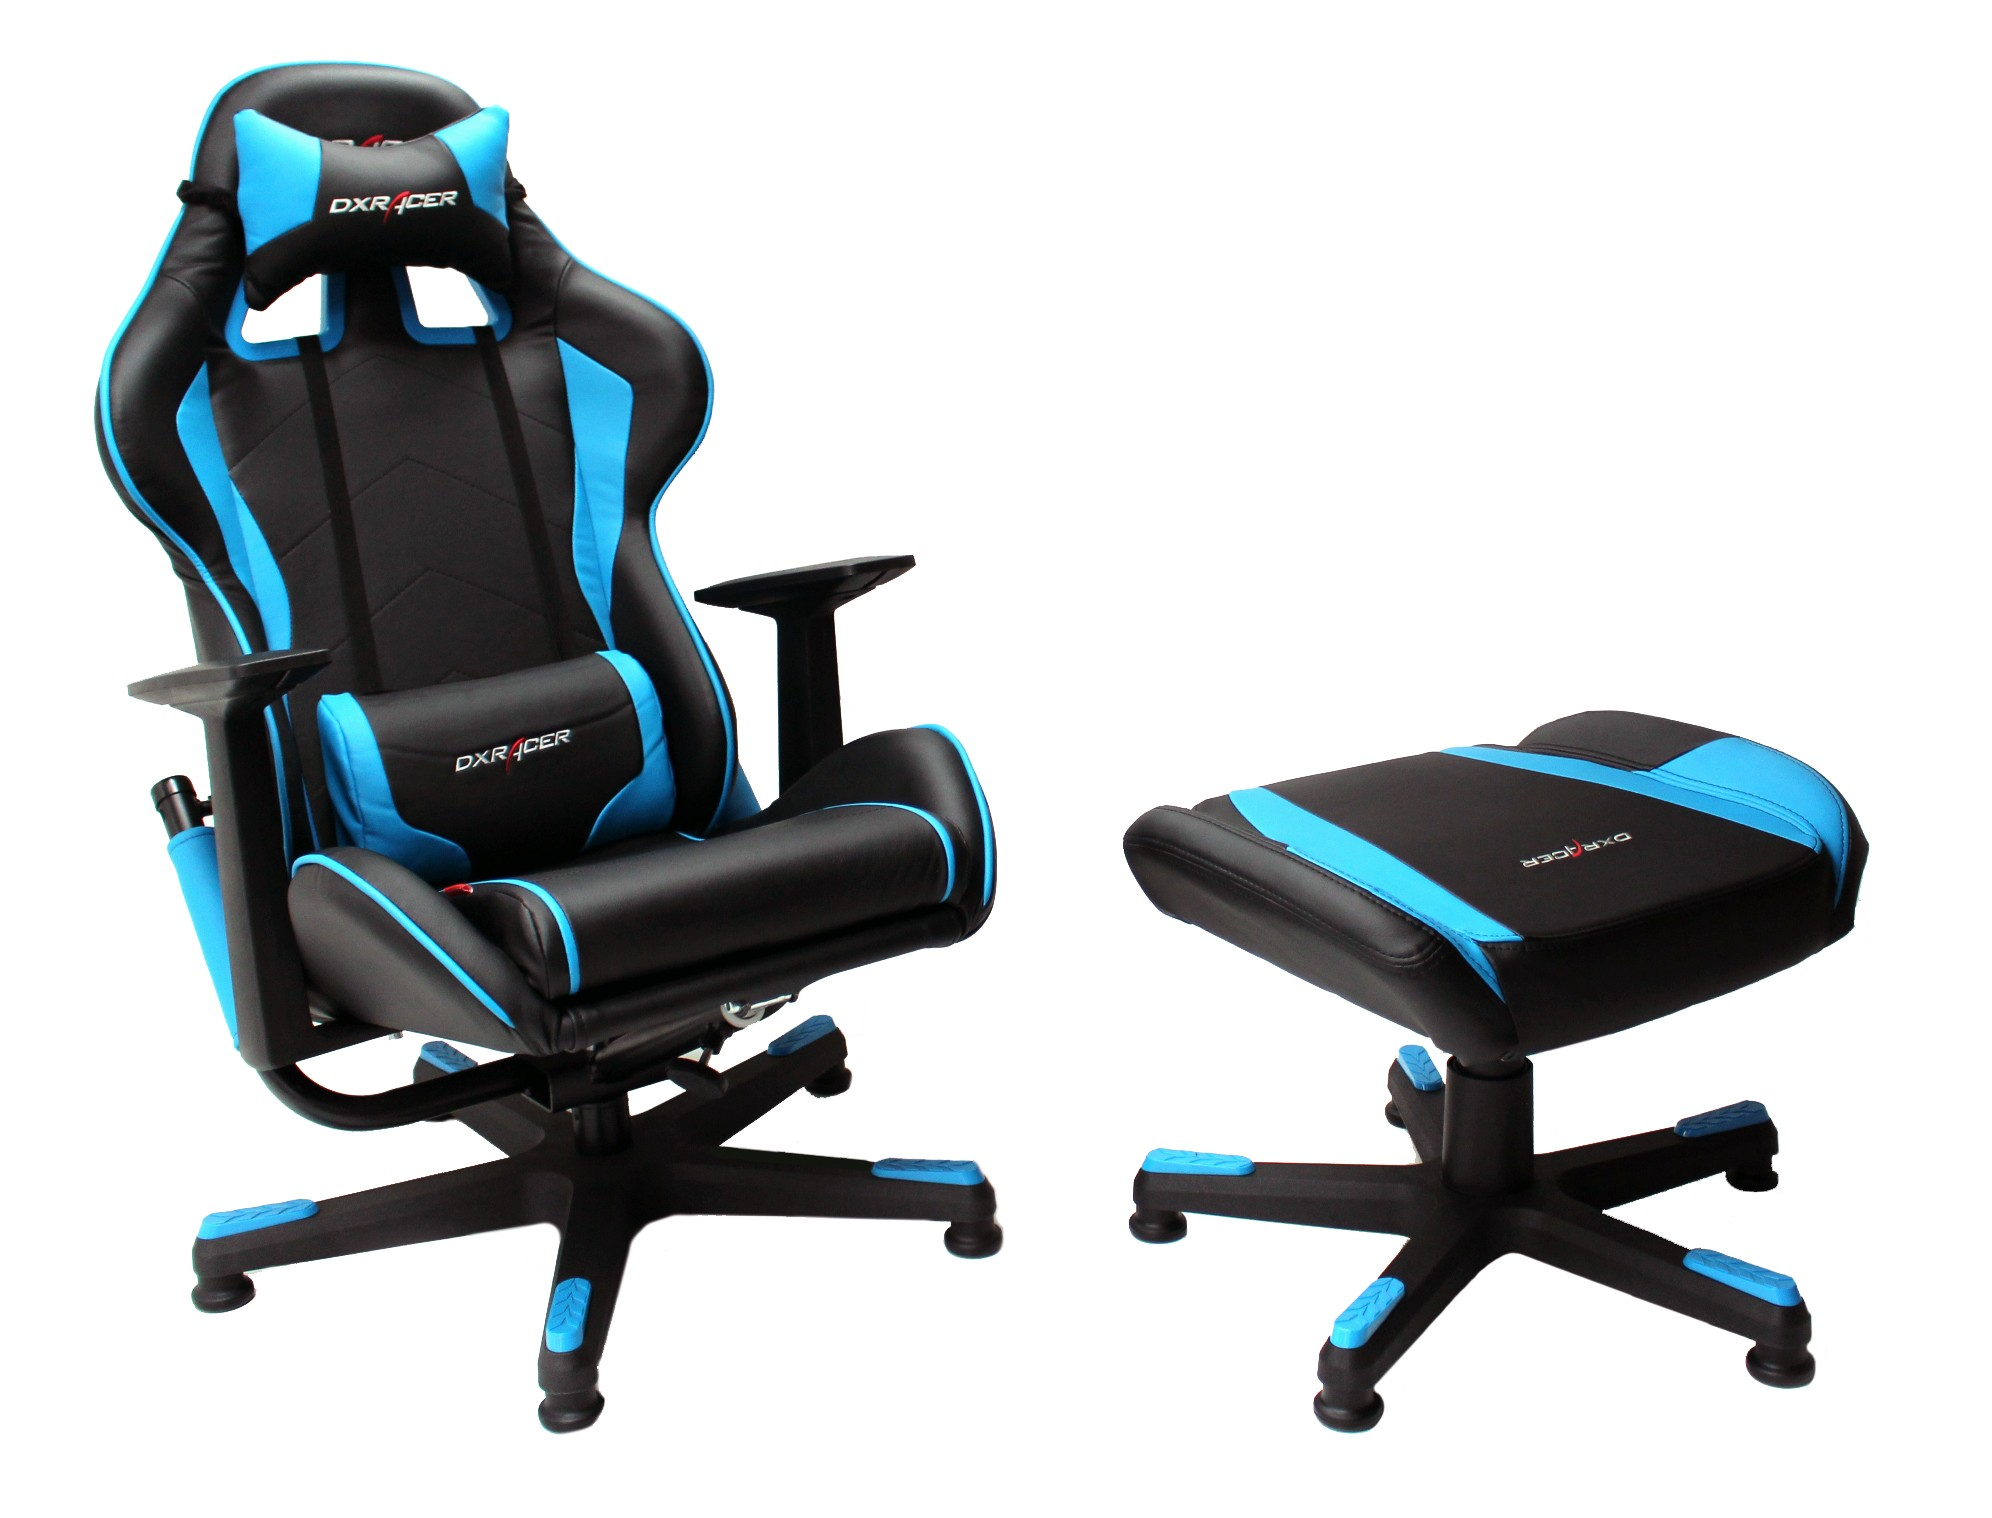 gamer chair USIJMVL